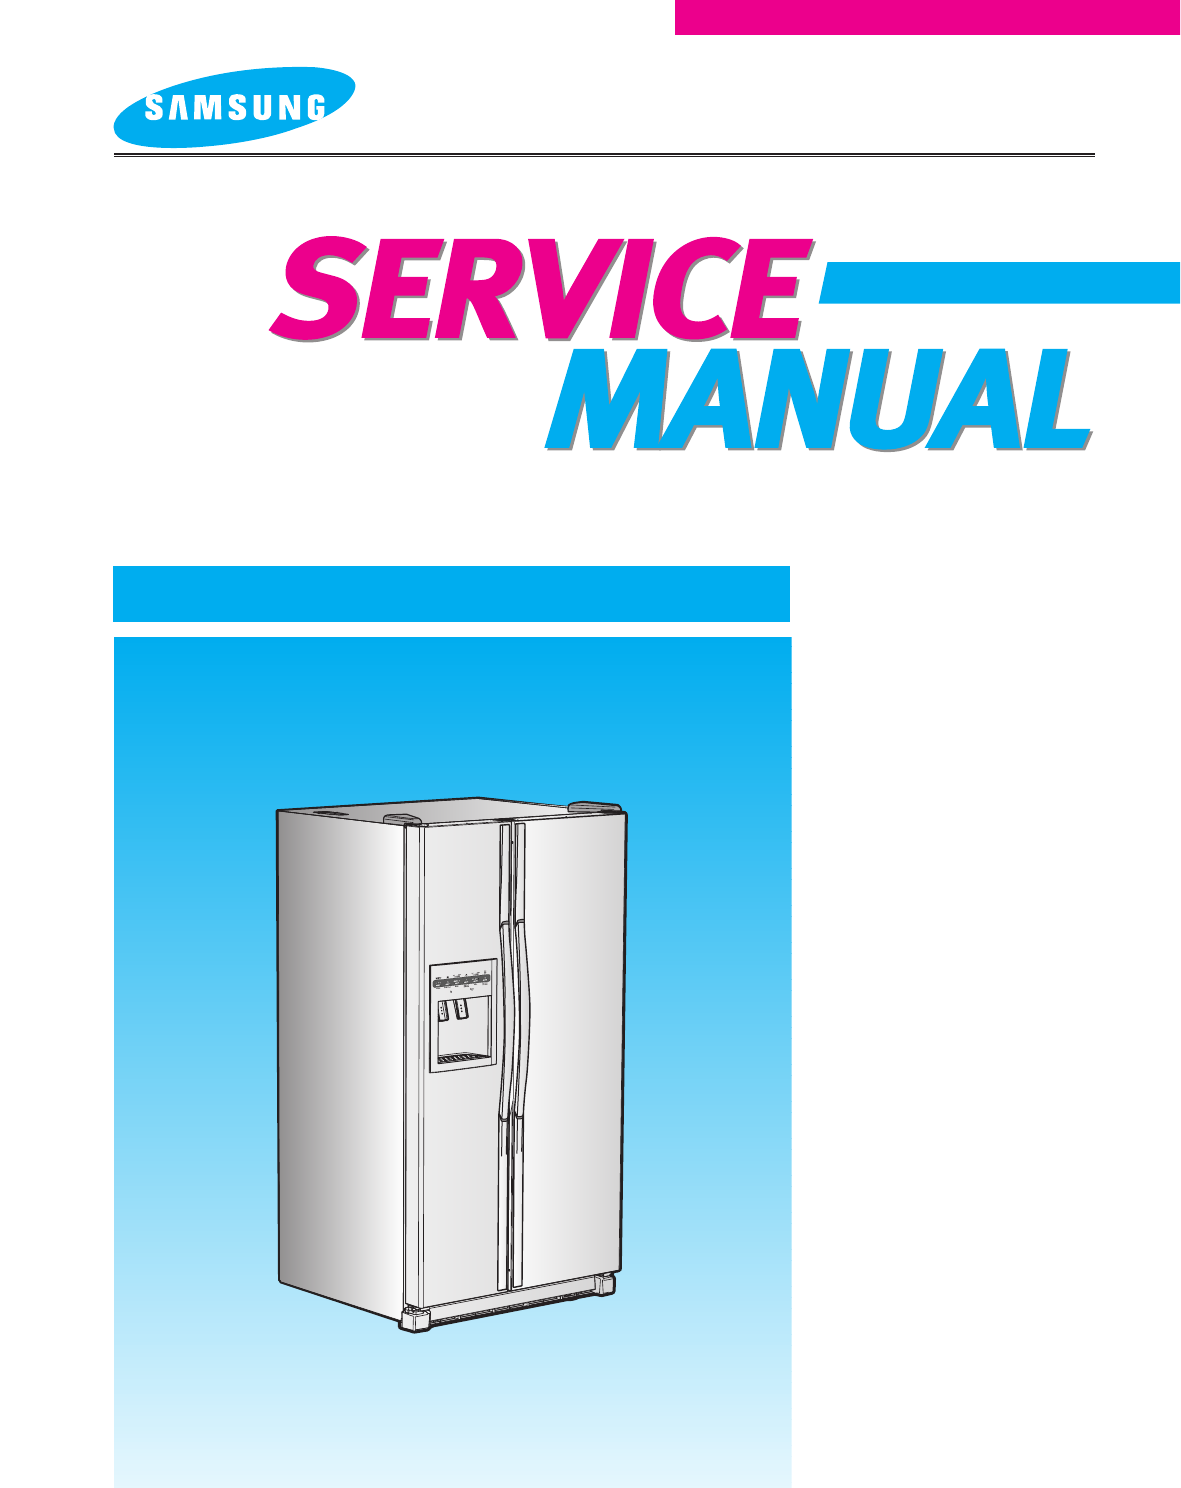 samsung dishwasher instruction manual images